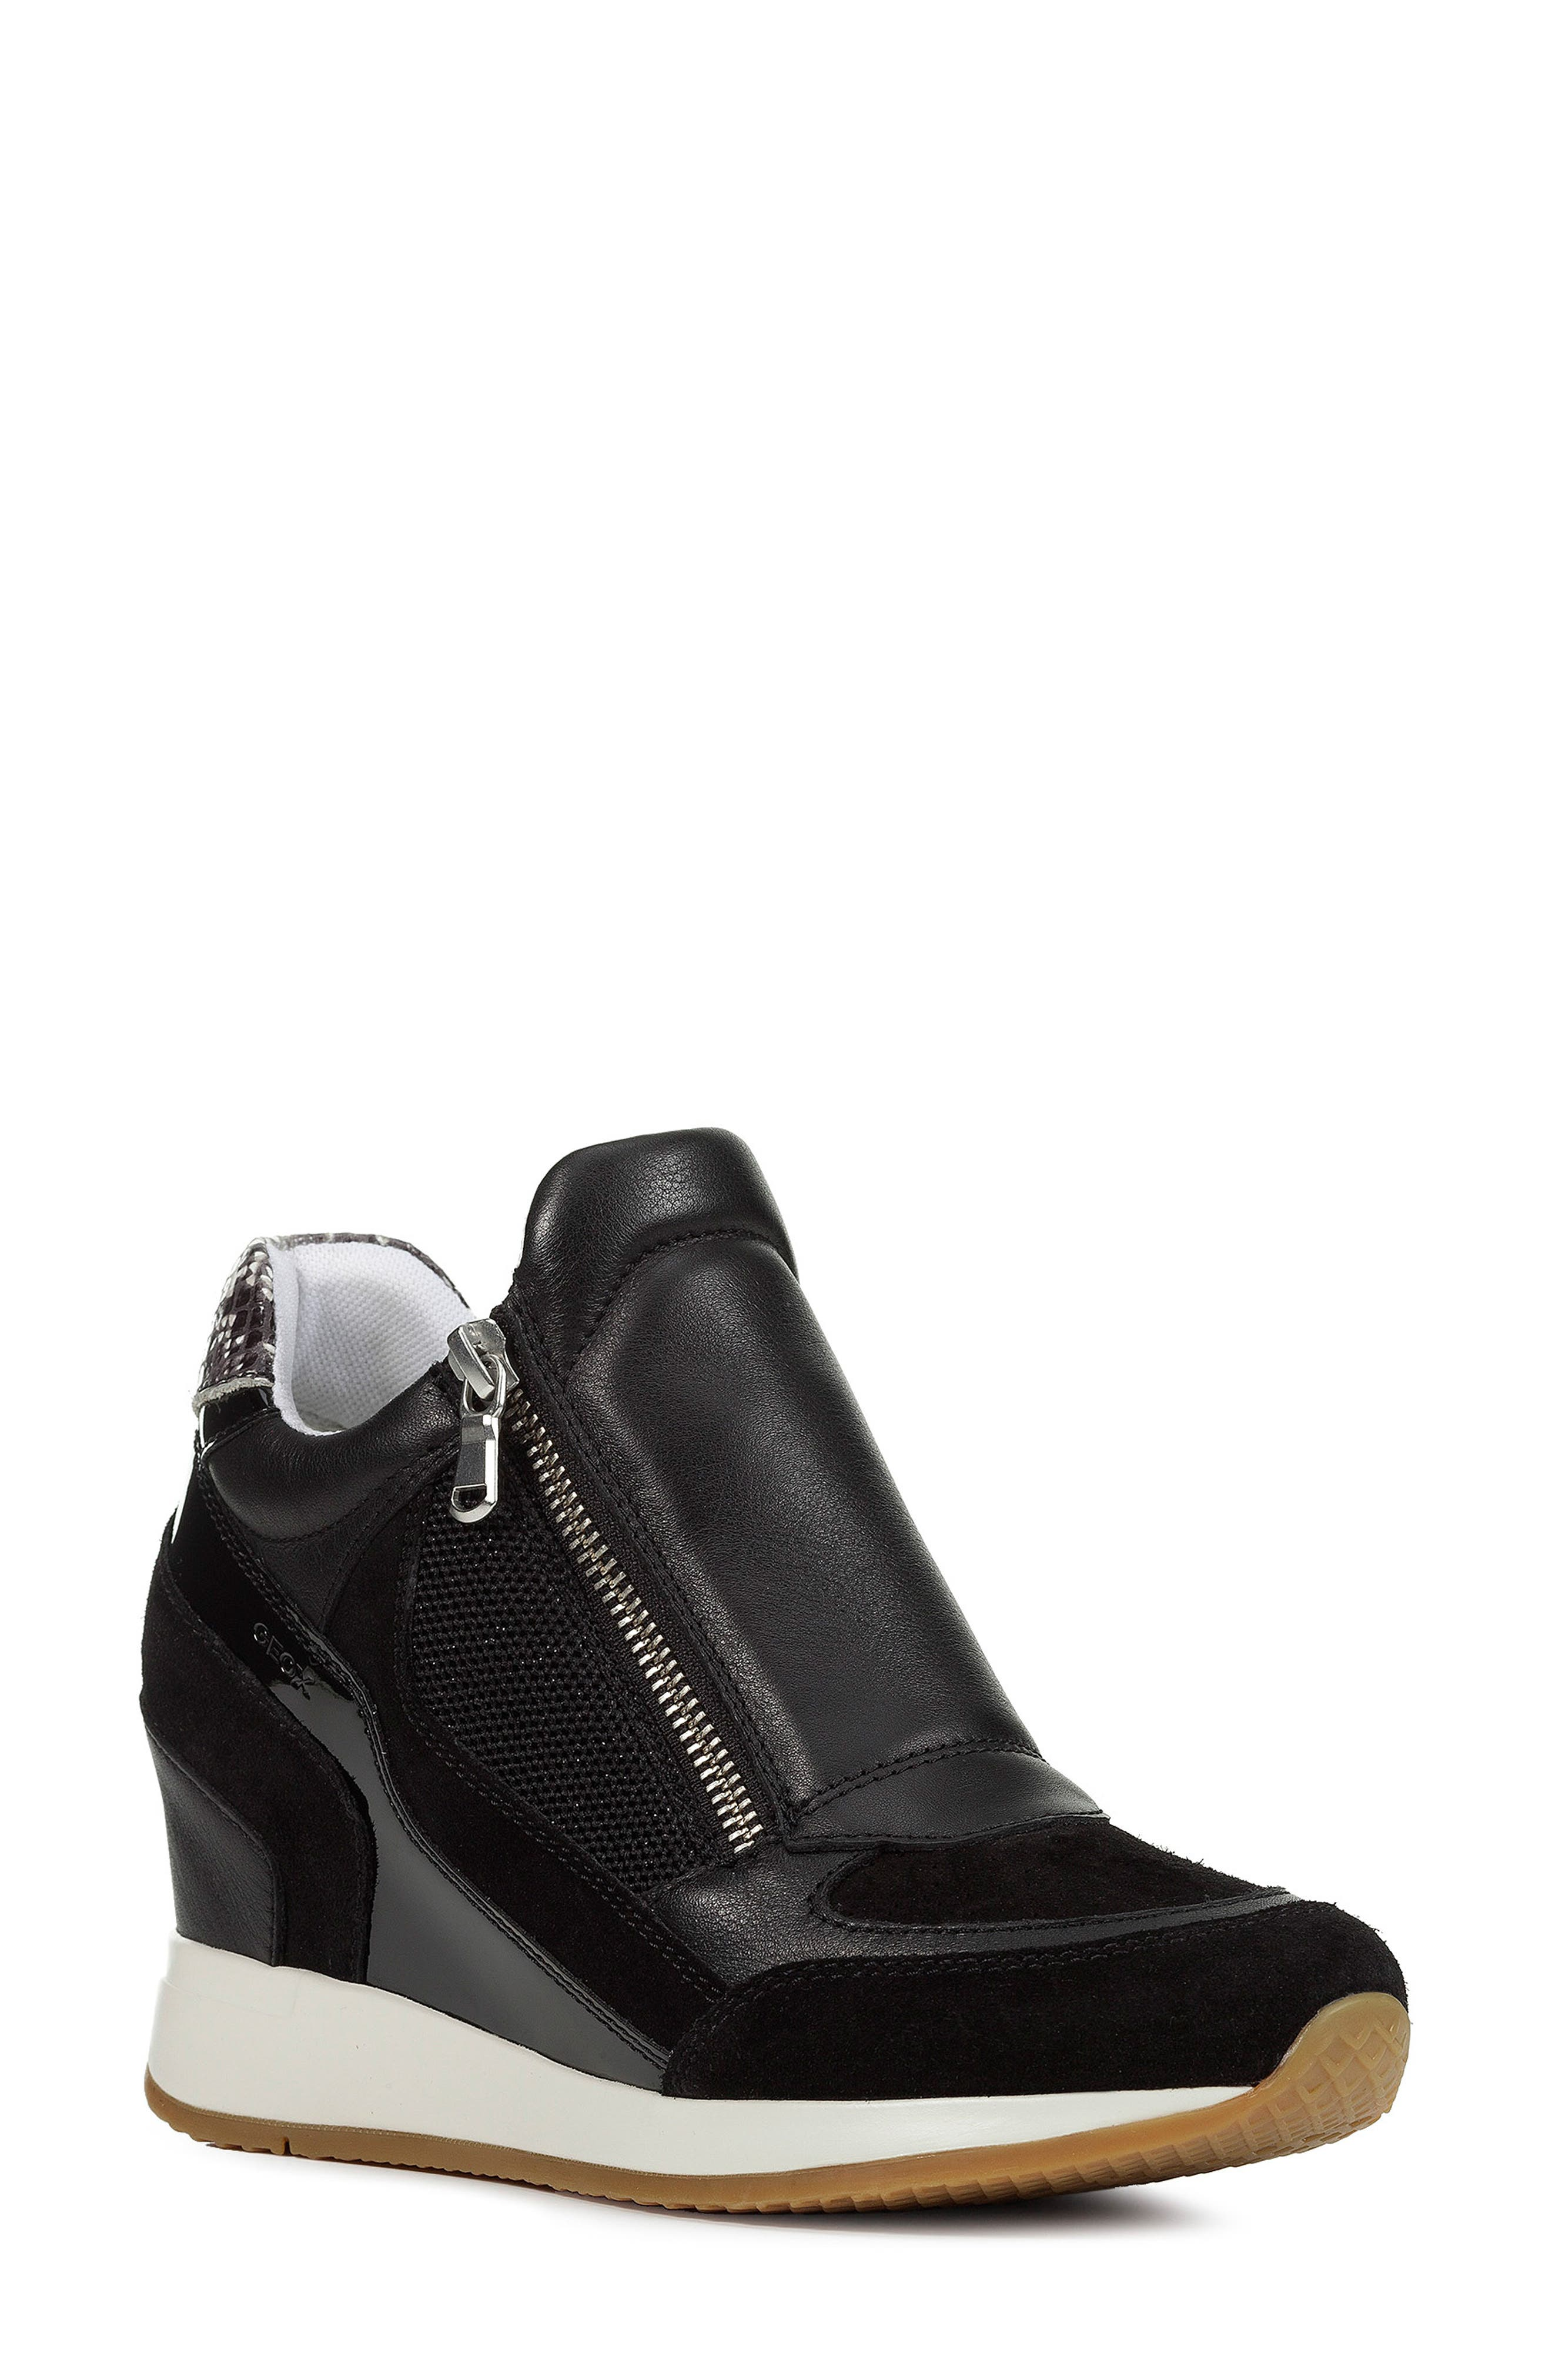 GEOX Nydame Wedge Sneaker, Main, color, BLACK/ BLACK LEATHER